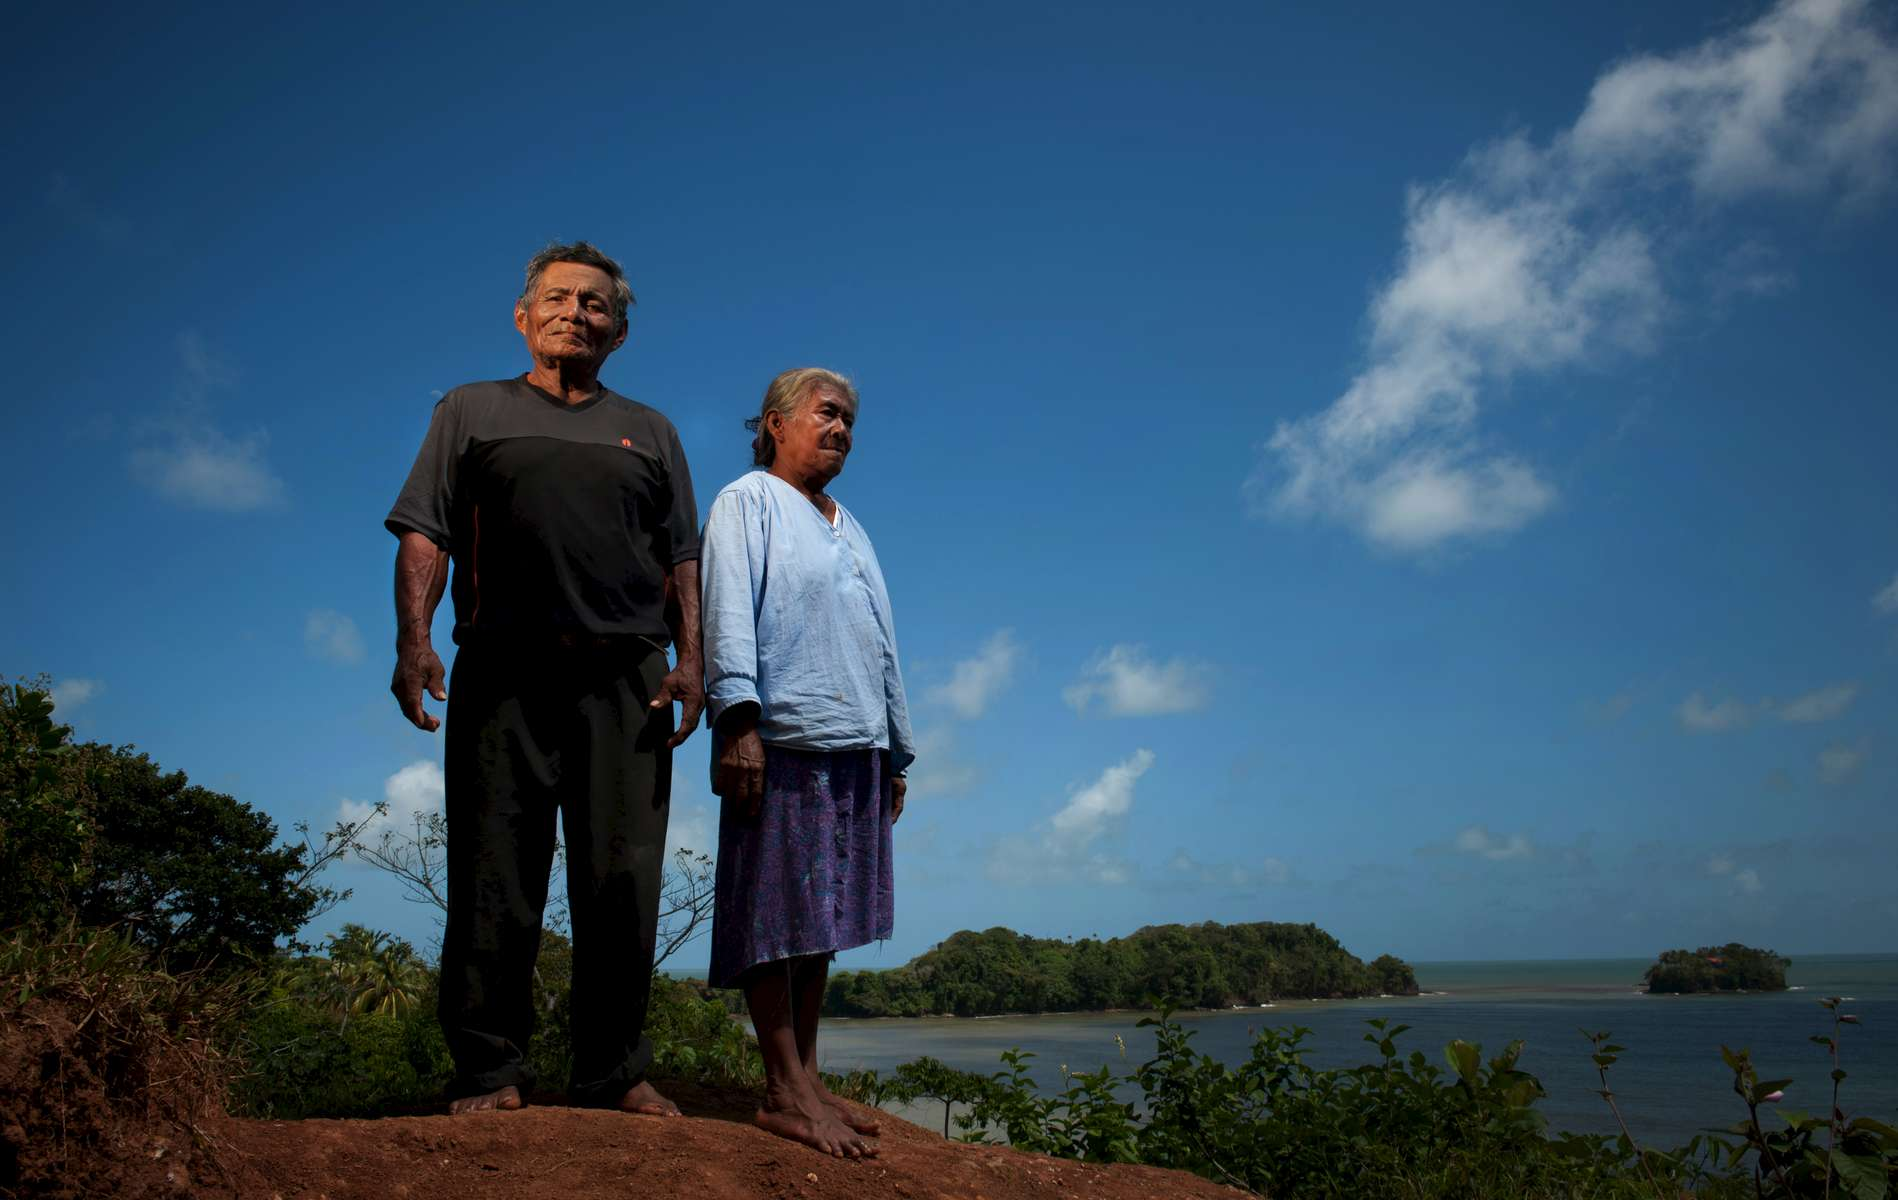 Pedro McCrea and his wife Cristina, Rama village elders, stand on a point at Bangkukuk that was identified by surveyors with a concrete marker. The proposed canal project is confusing for many villagers, who wish to defend their way of life from the project.